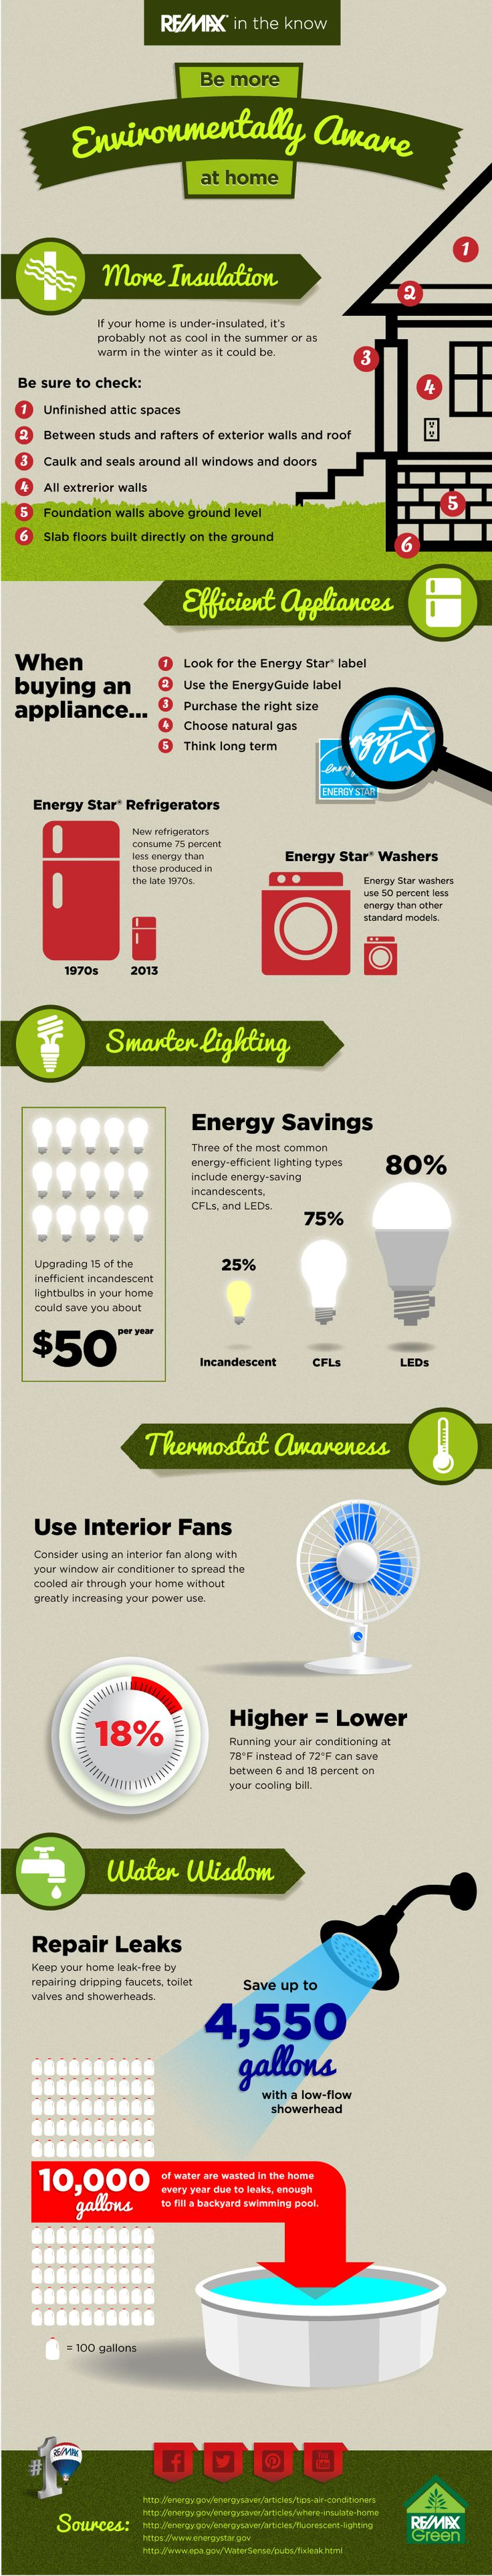 471 best images about recycling green facts on pinterest for Facts about energy conservation